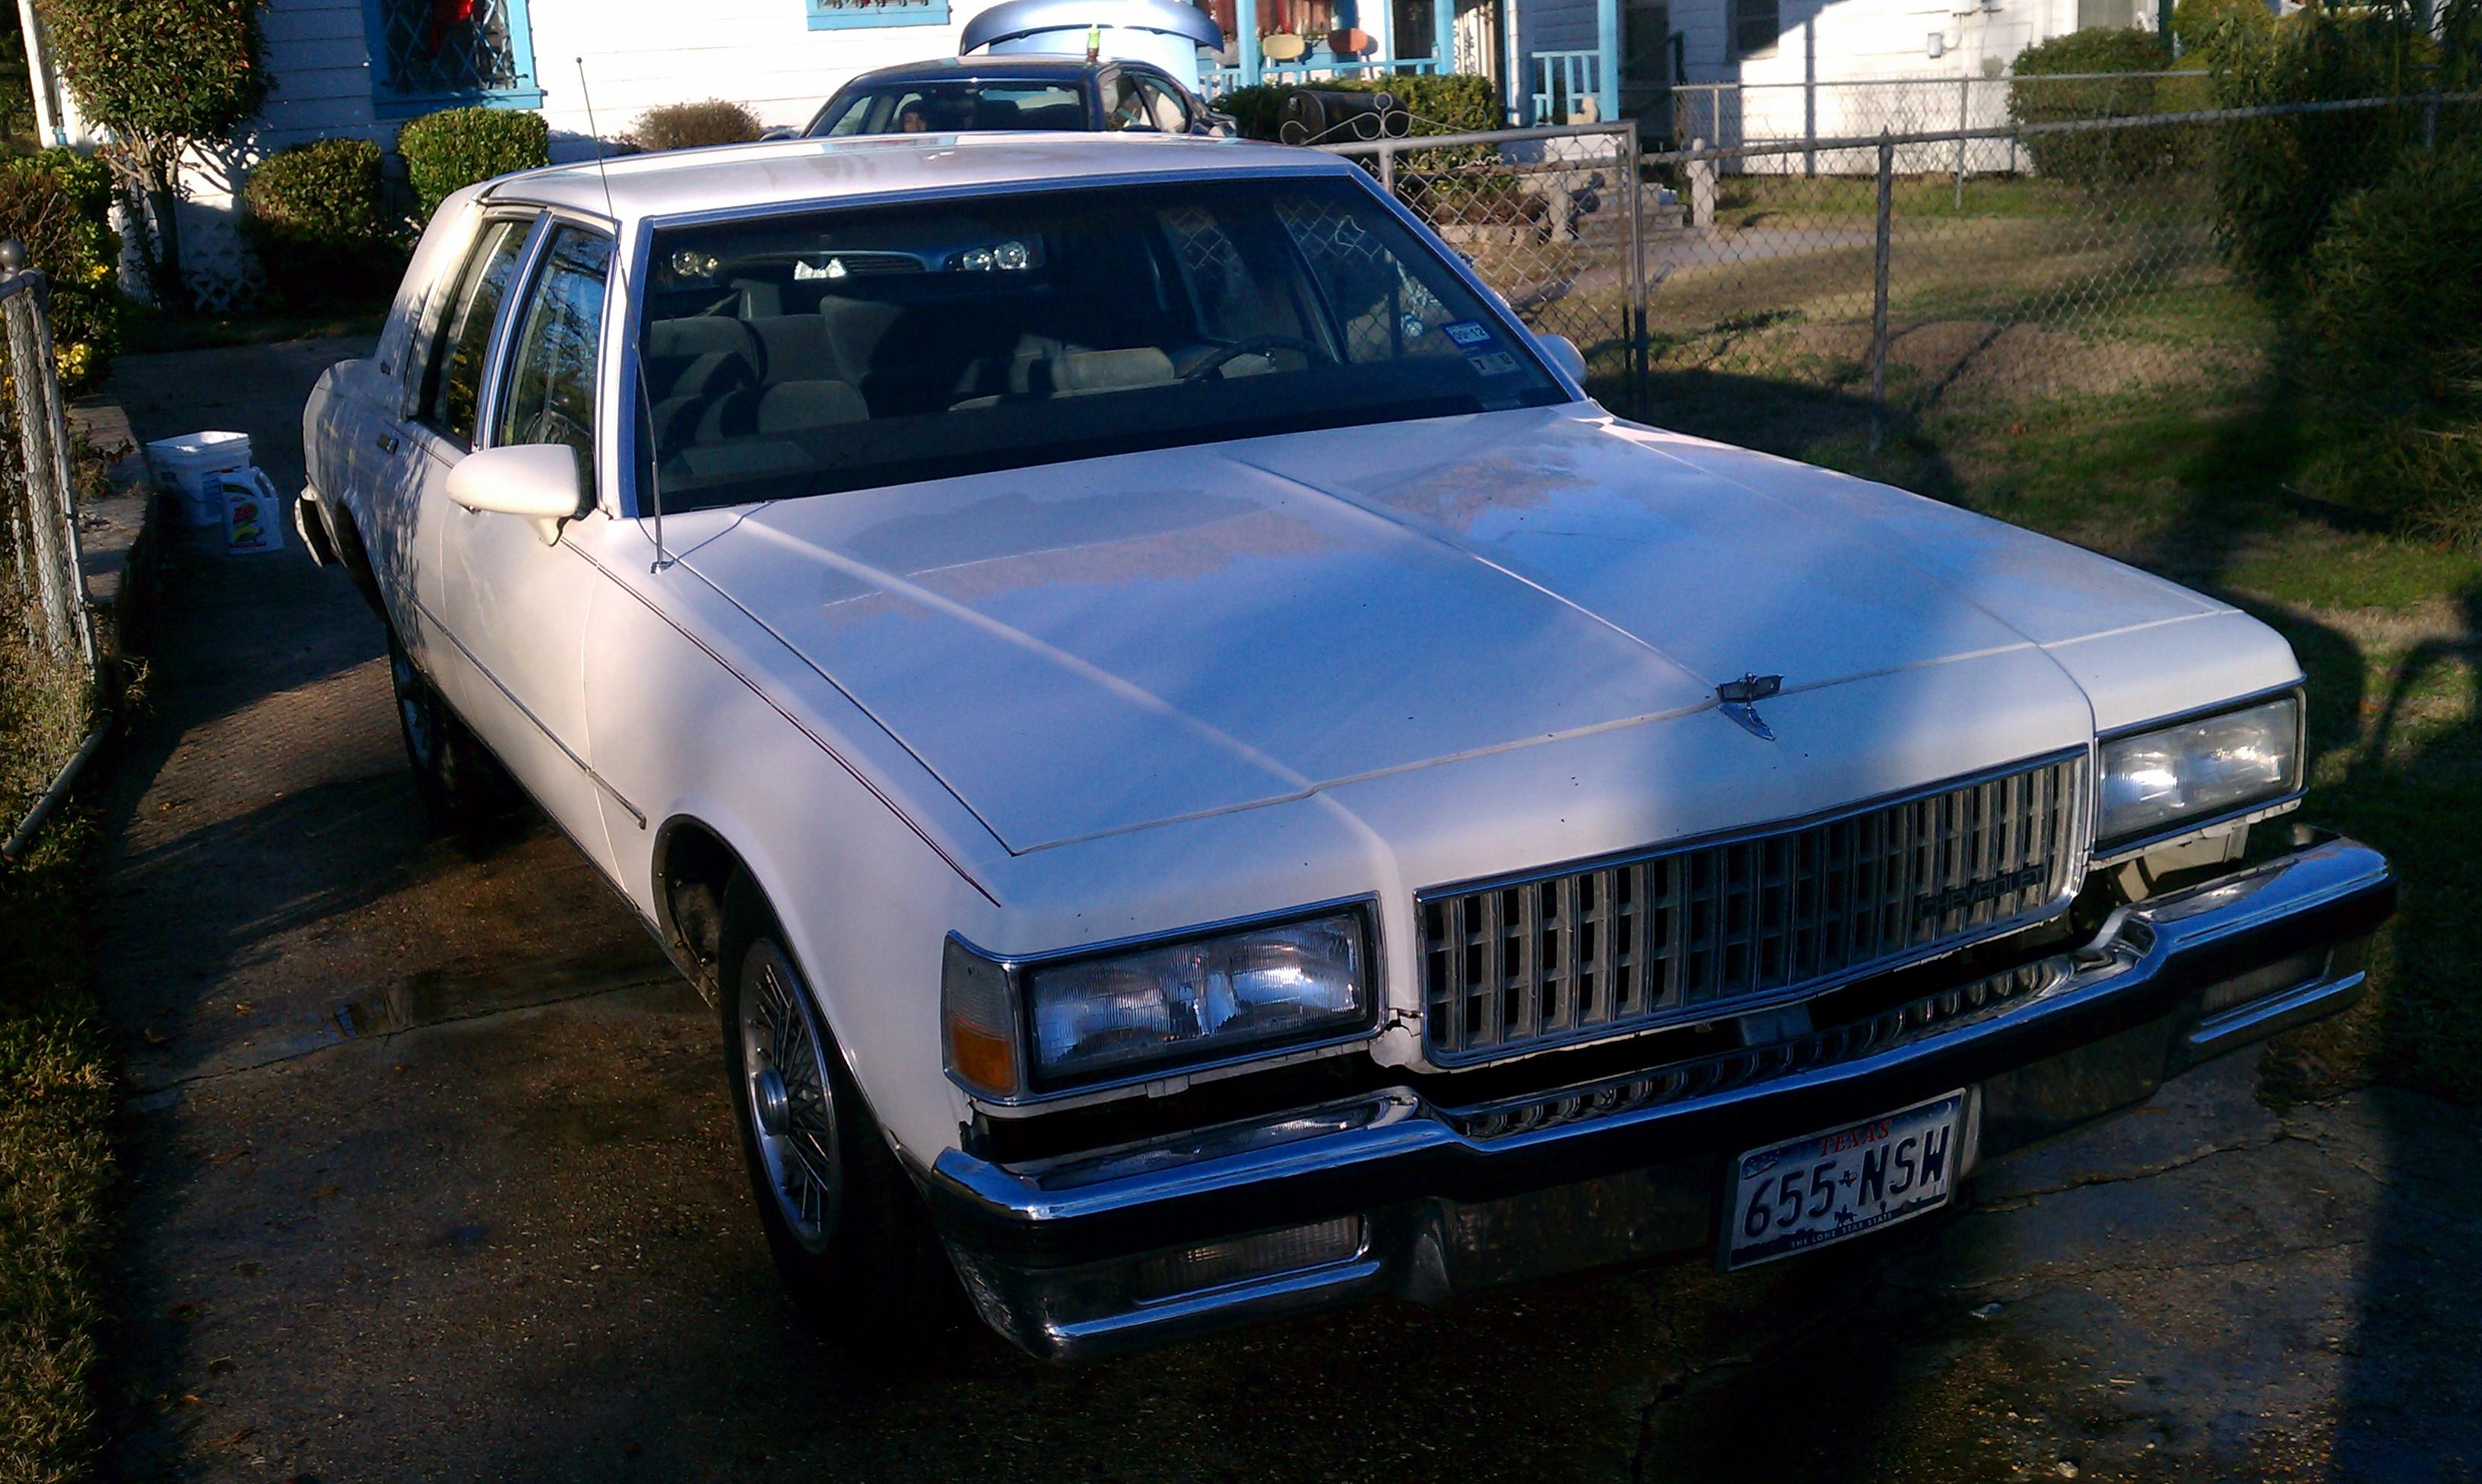 chargerb 1990 chevrolet capriceclassic brougham ls sedan 4d specs photos modification info at cardomain cardomain